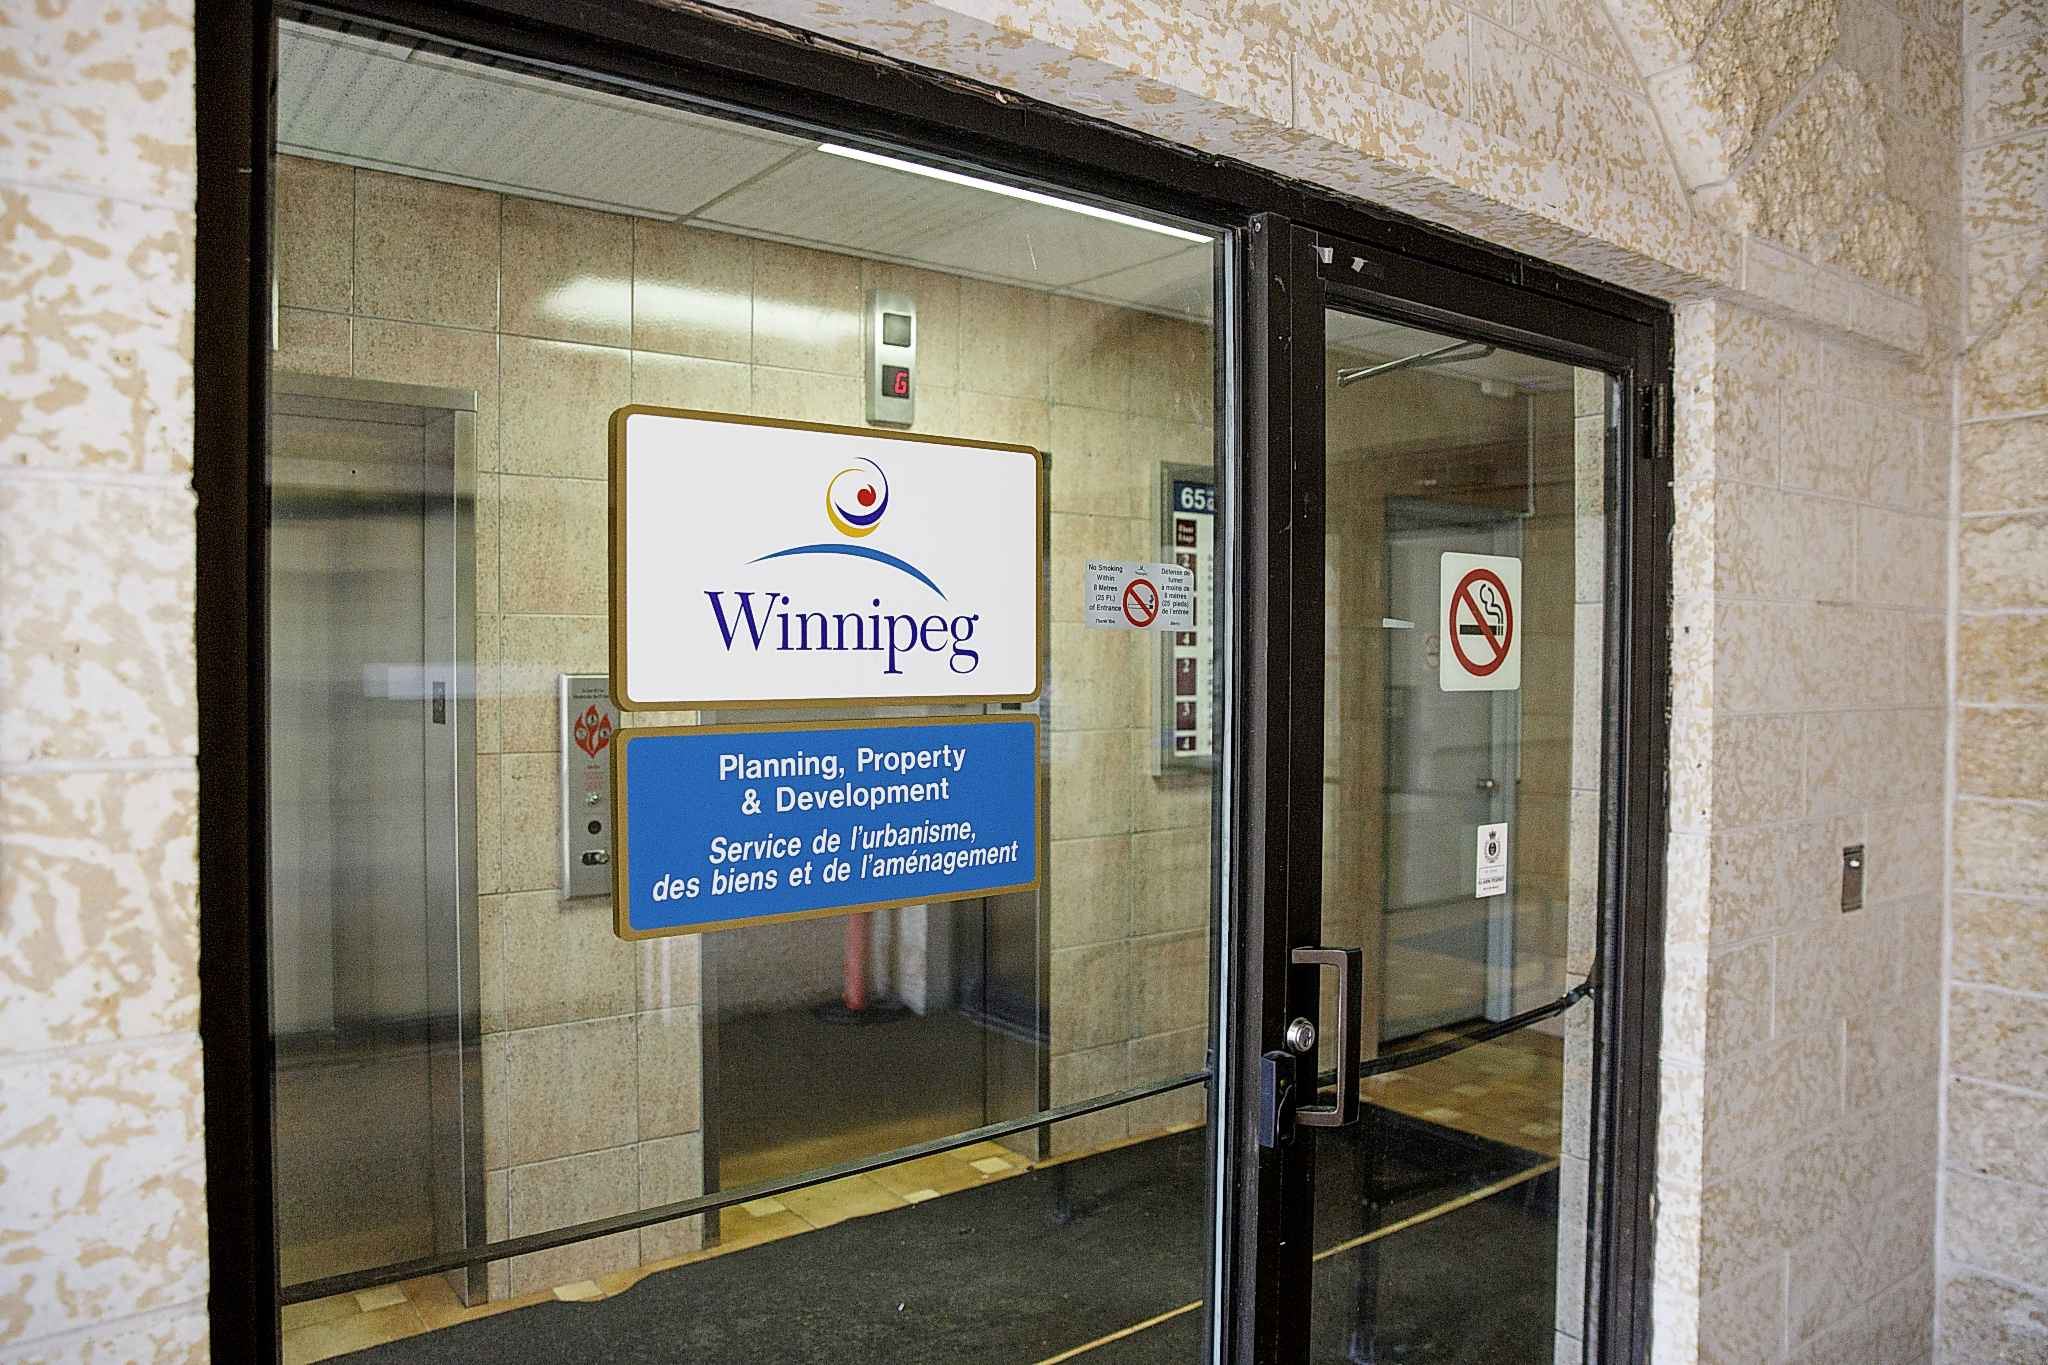 The City of Winnipeg Planning Property and Development offices at 65 Garry Street.